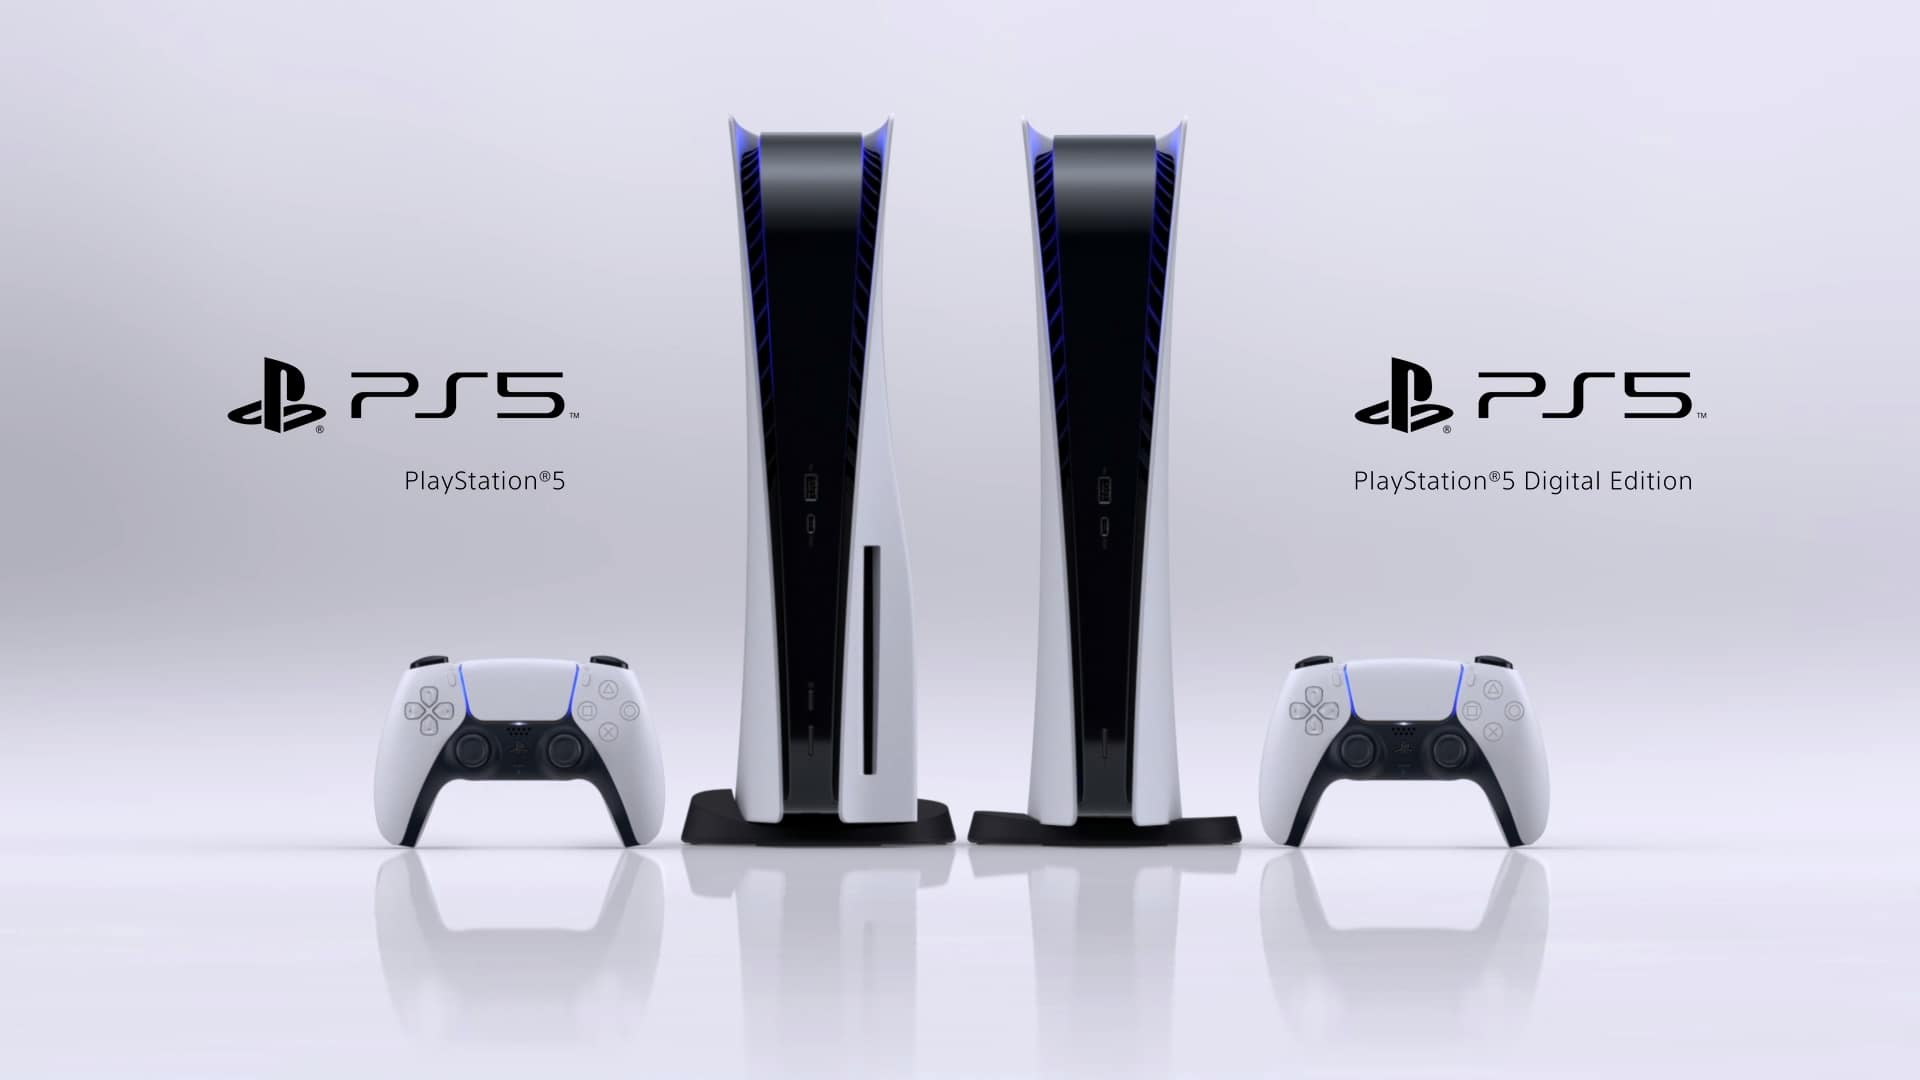 Sony reportedly reducing PS5 production by four million units due to SoC issues